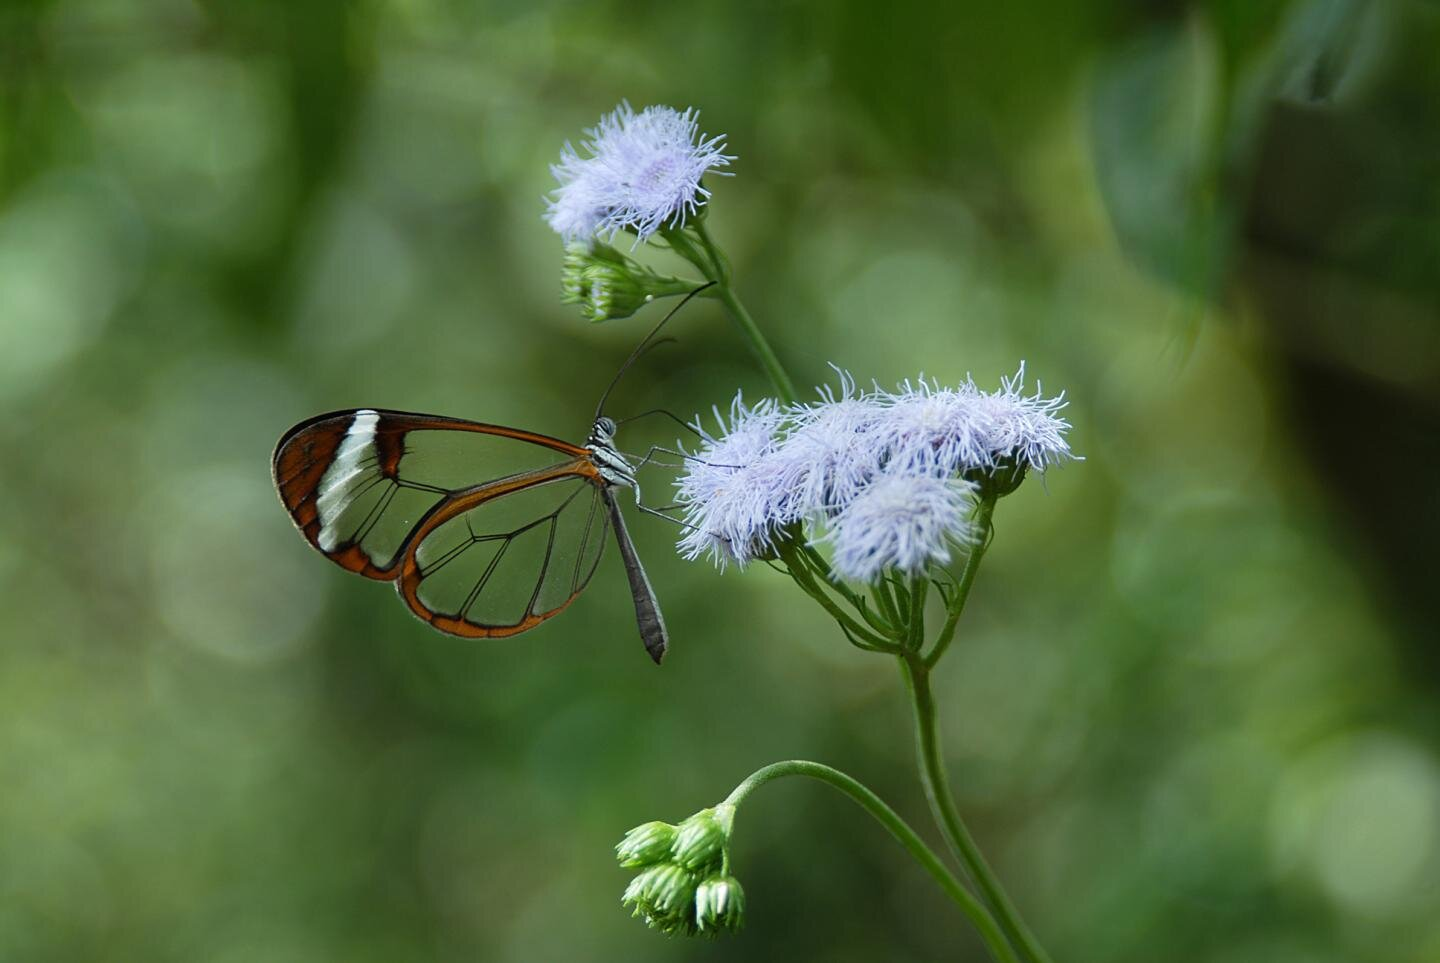 Many animals have evolved camouflage tactics for self-defense, but some butterflies and moths have taken it even further: They've developed transparent wings, making them almost invisible to predators.